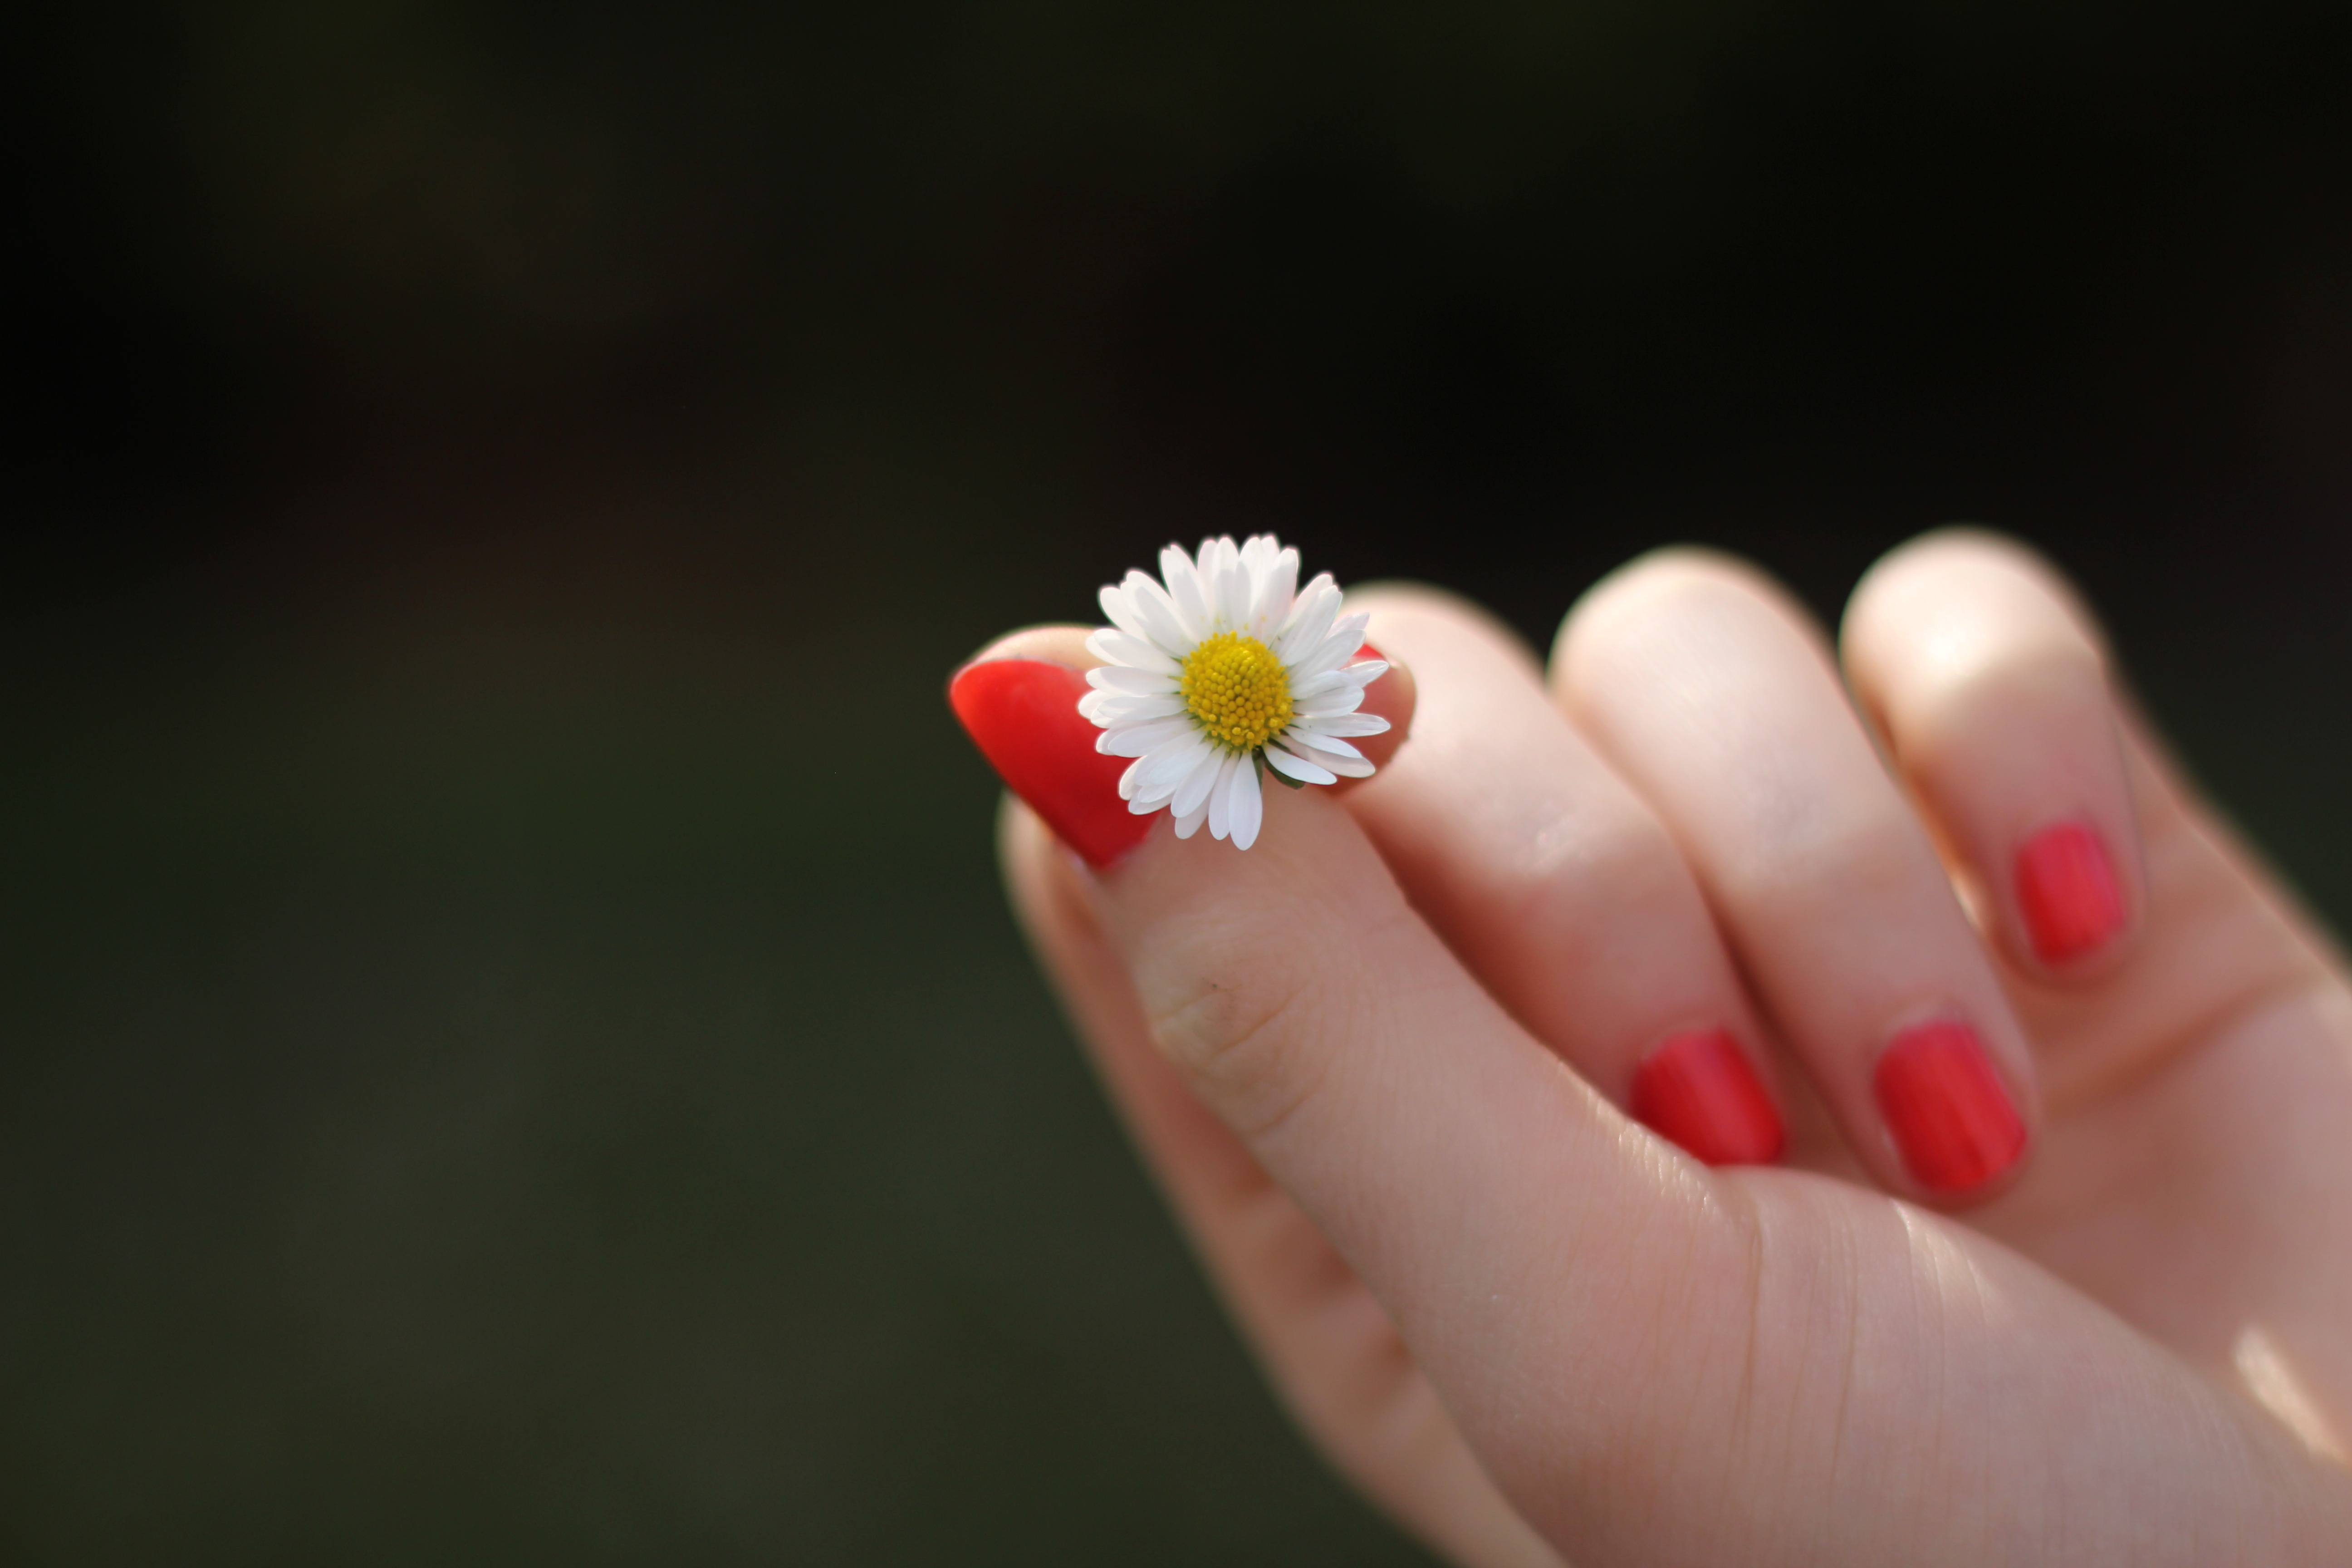 person with red manicure holding white petal flower free stock photo